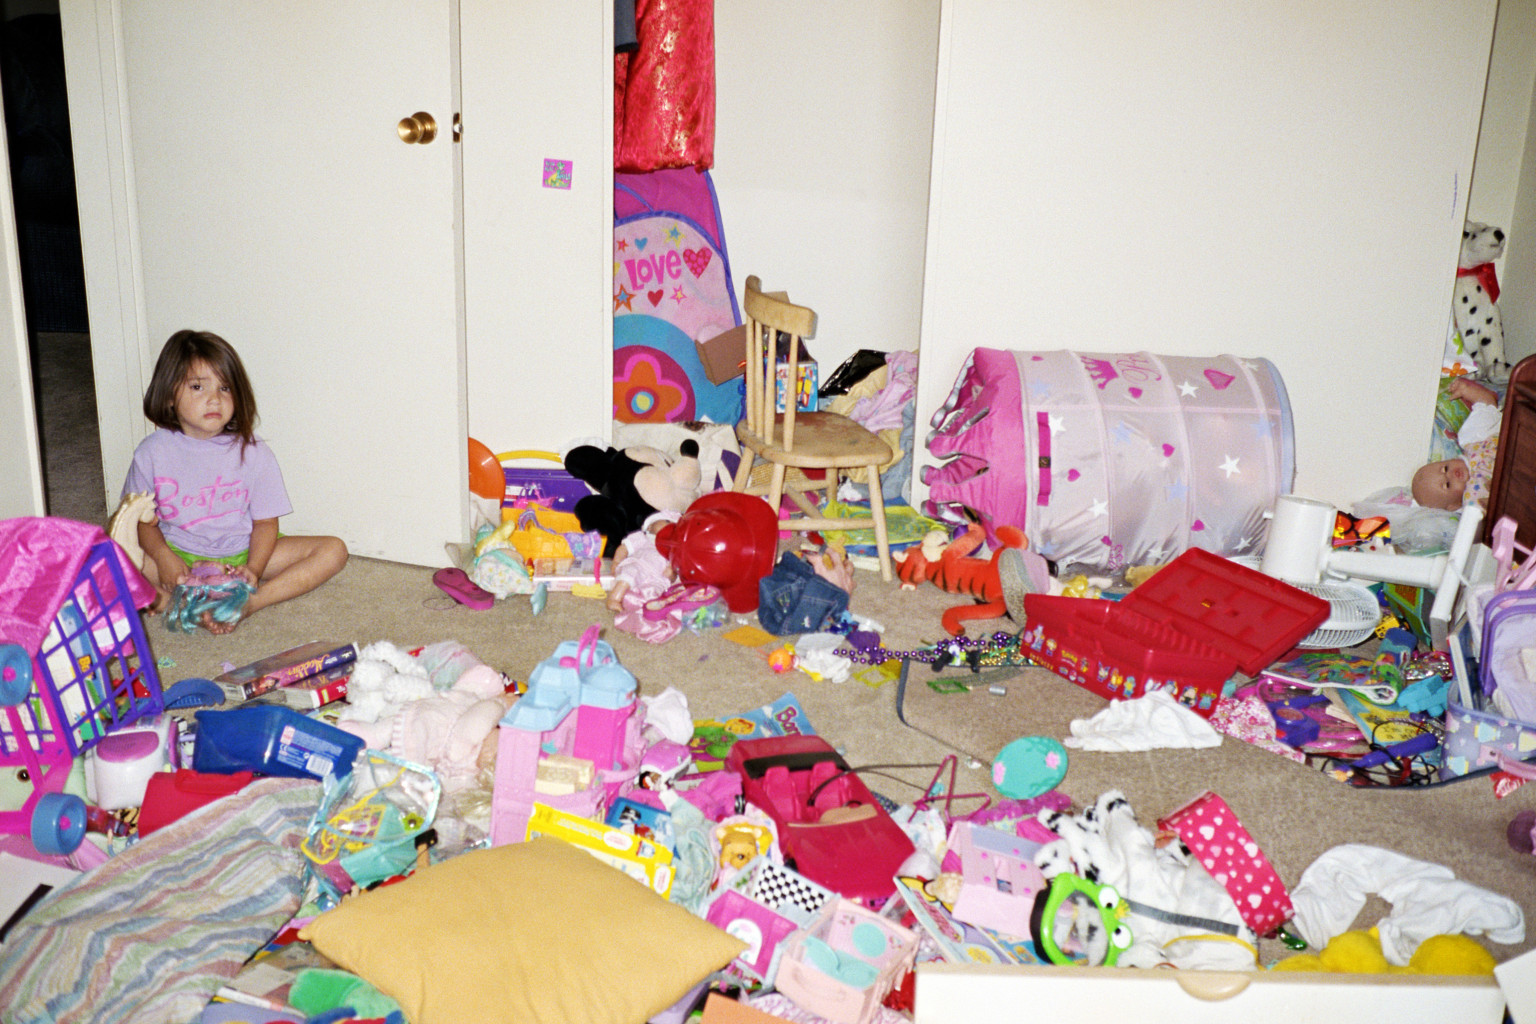 Best ideas about Messy Kids Room . Save or Pin You re Never Too Young to Get Organized 4 Skills for Kids Now.